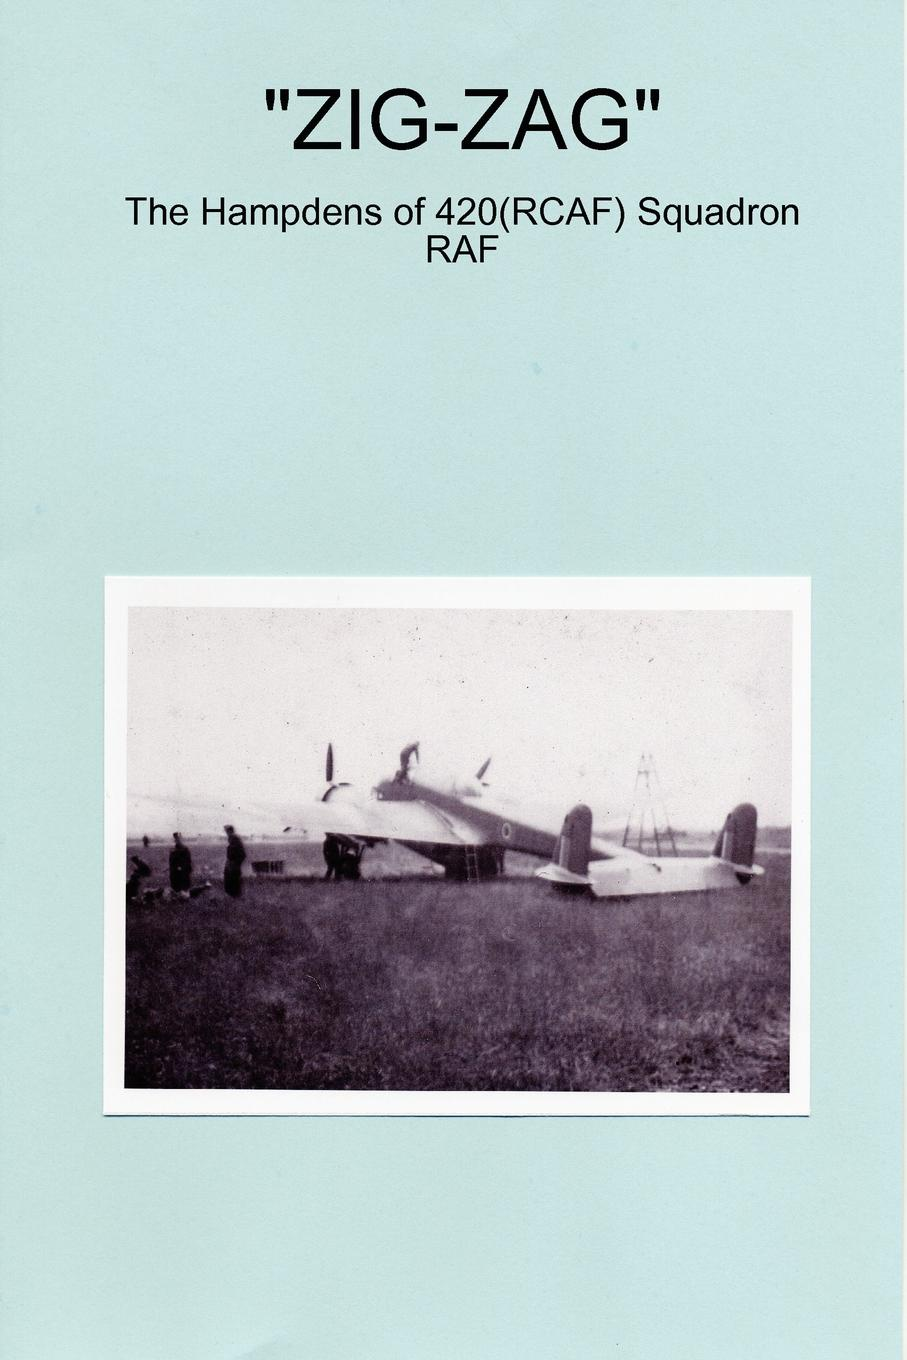 Peter J Sainty ZIG-ZAG - The Hampdens of 420(RCAF) Squadron RAF reginald fleming johnston twilight in the forbidden city illustrated and revised 4th edition